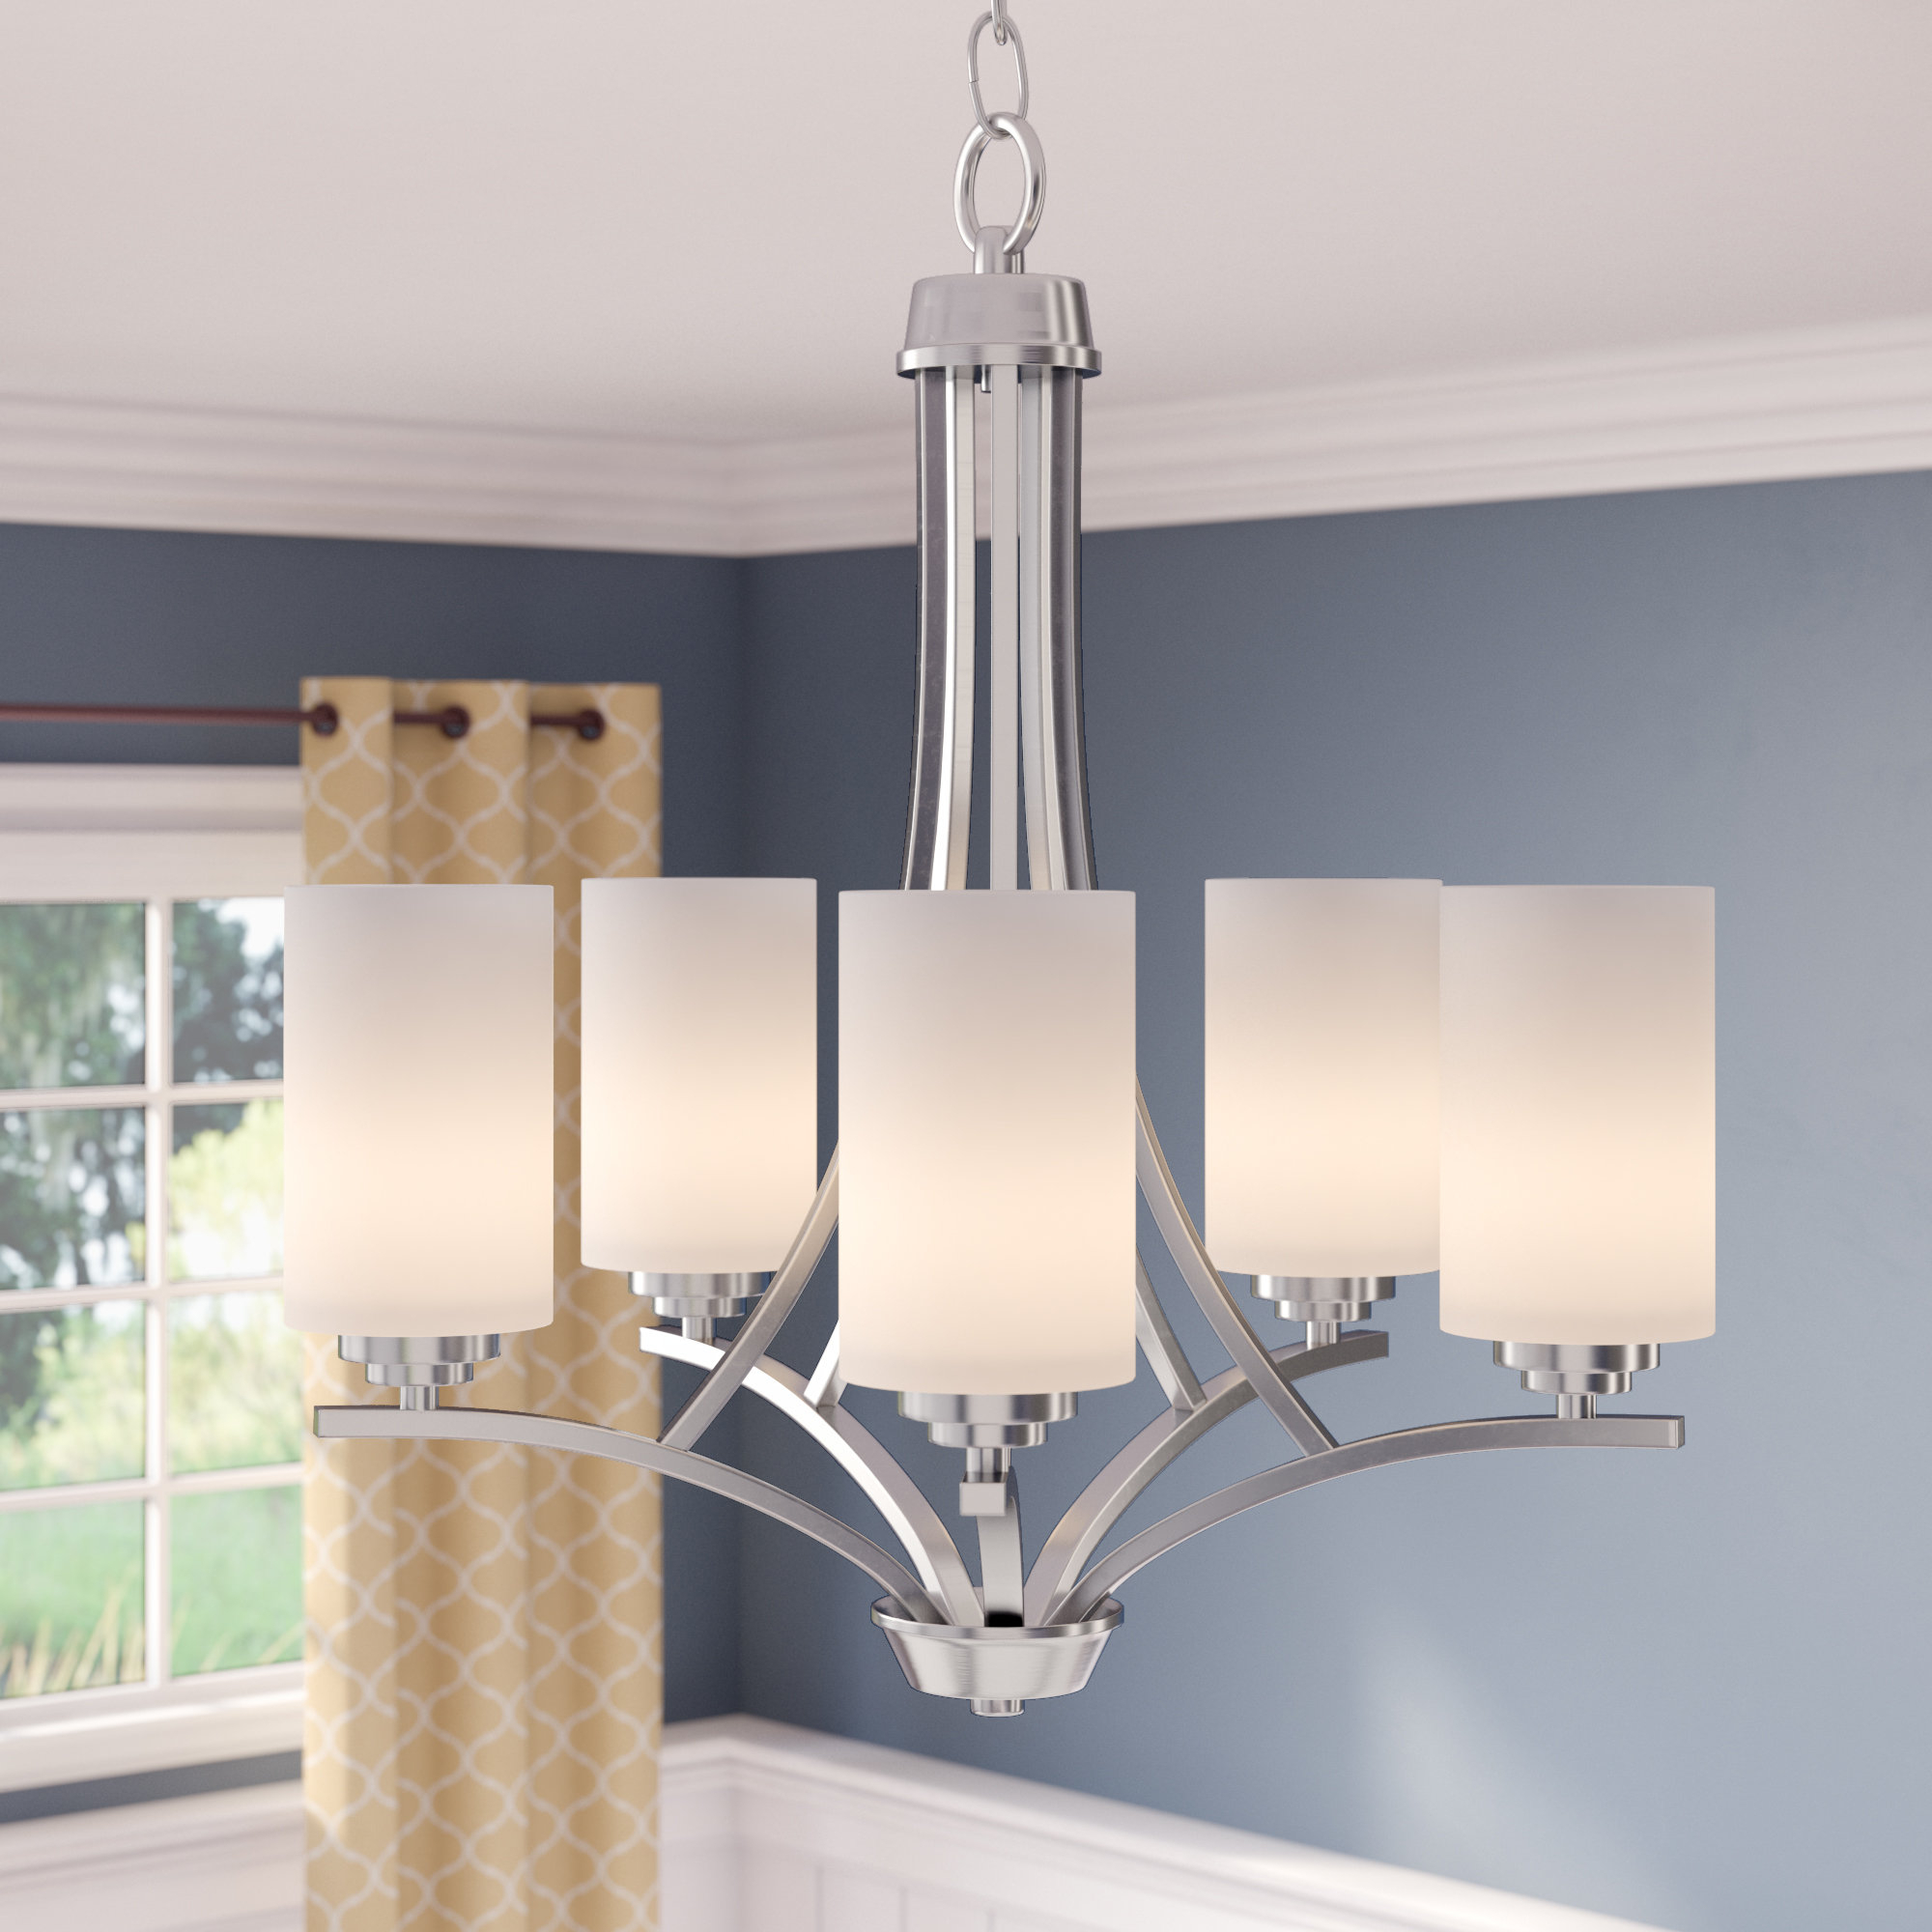 Bainsby 5 Light Shaded Chandelier In Suki 5 Light Shaded Chandeliers (View 4 of 30)